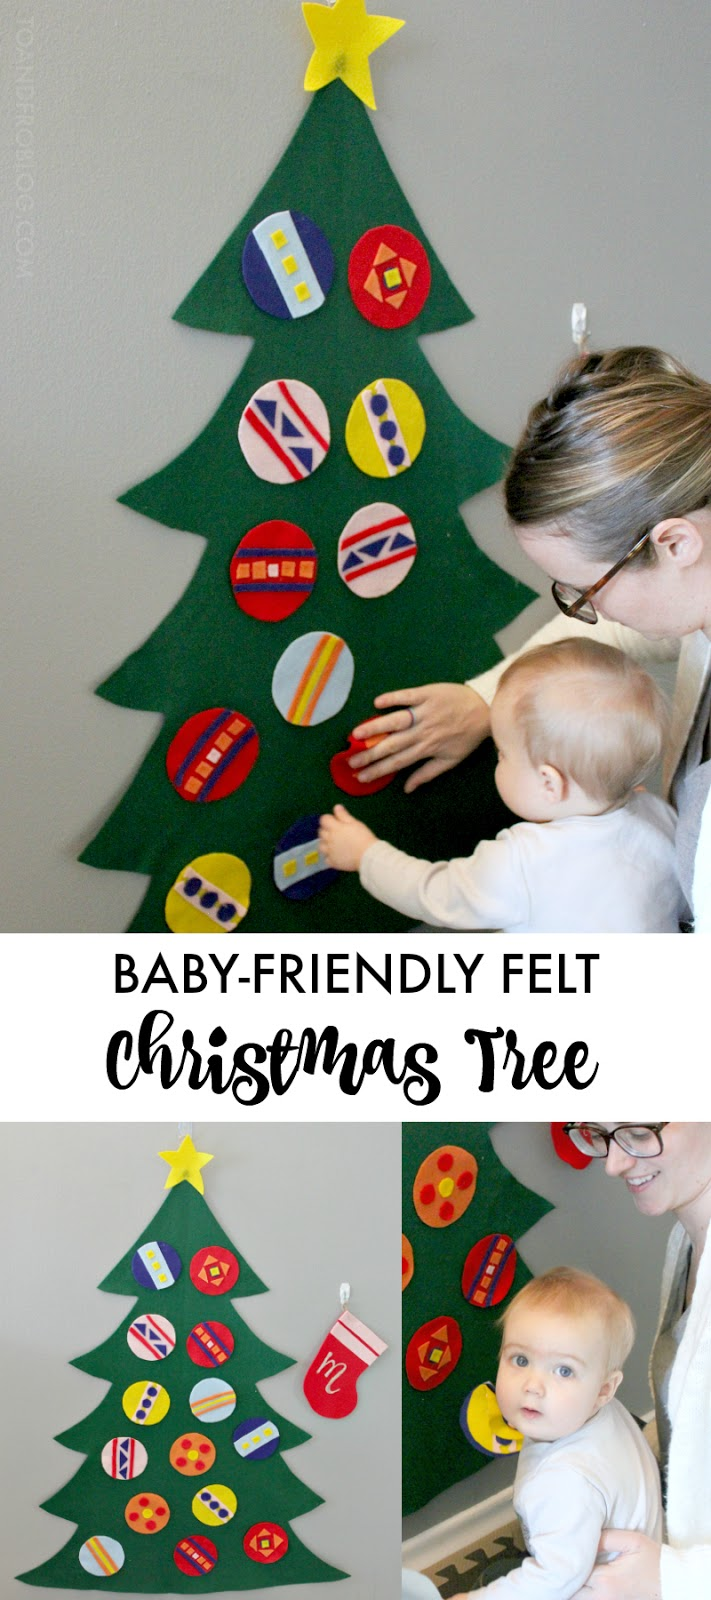 Baby-Friendly Felt Christmas Tree Tutorial